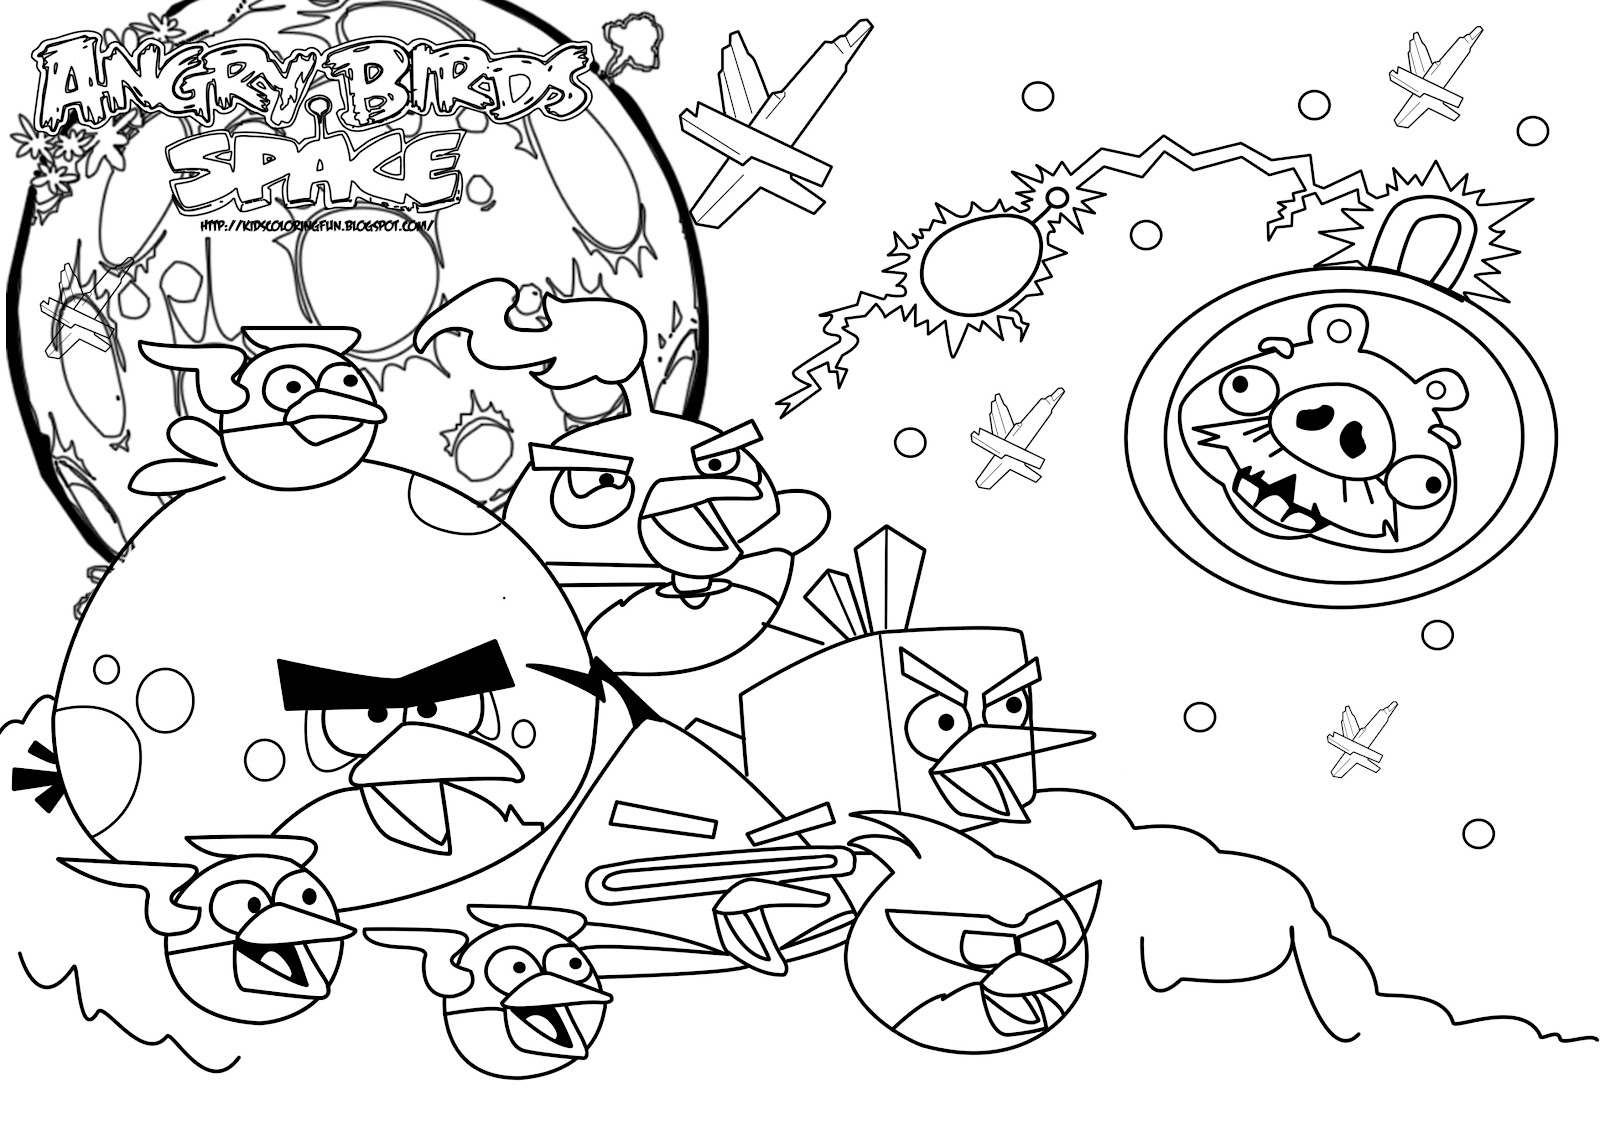 1600x1131 Angry Birds Rio Drawing Space Coloring Pages With Black Home